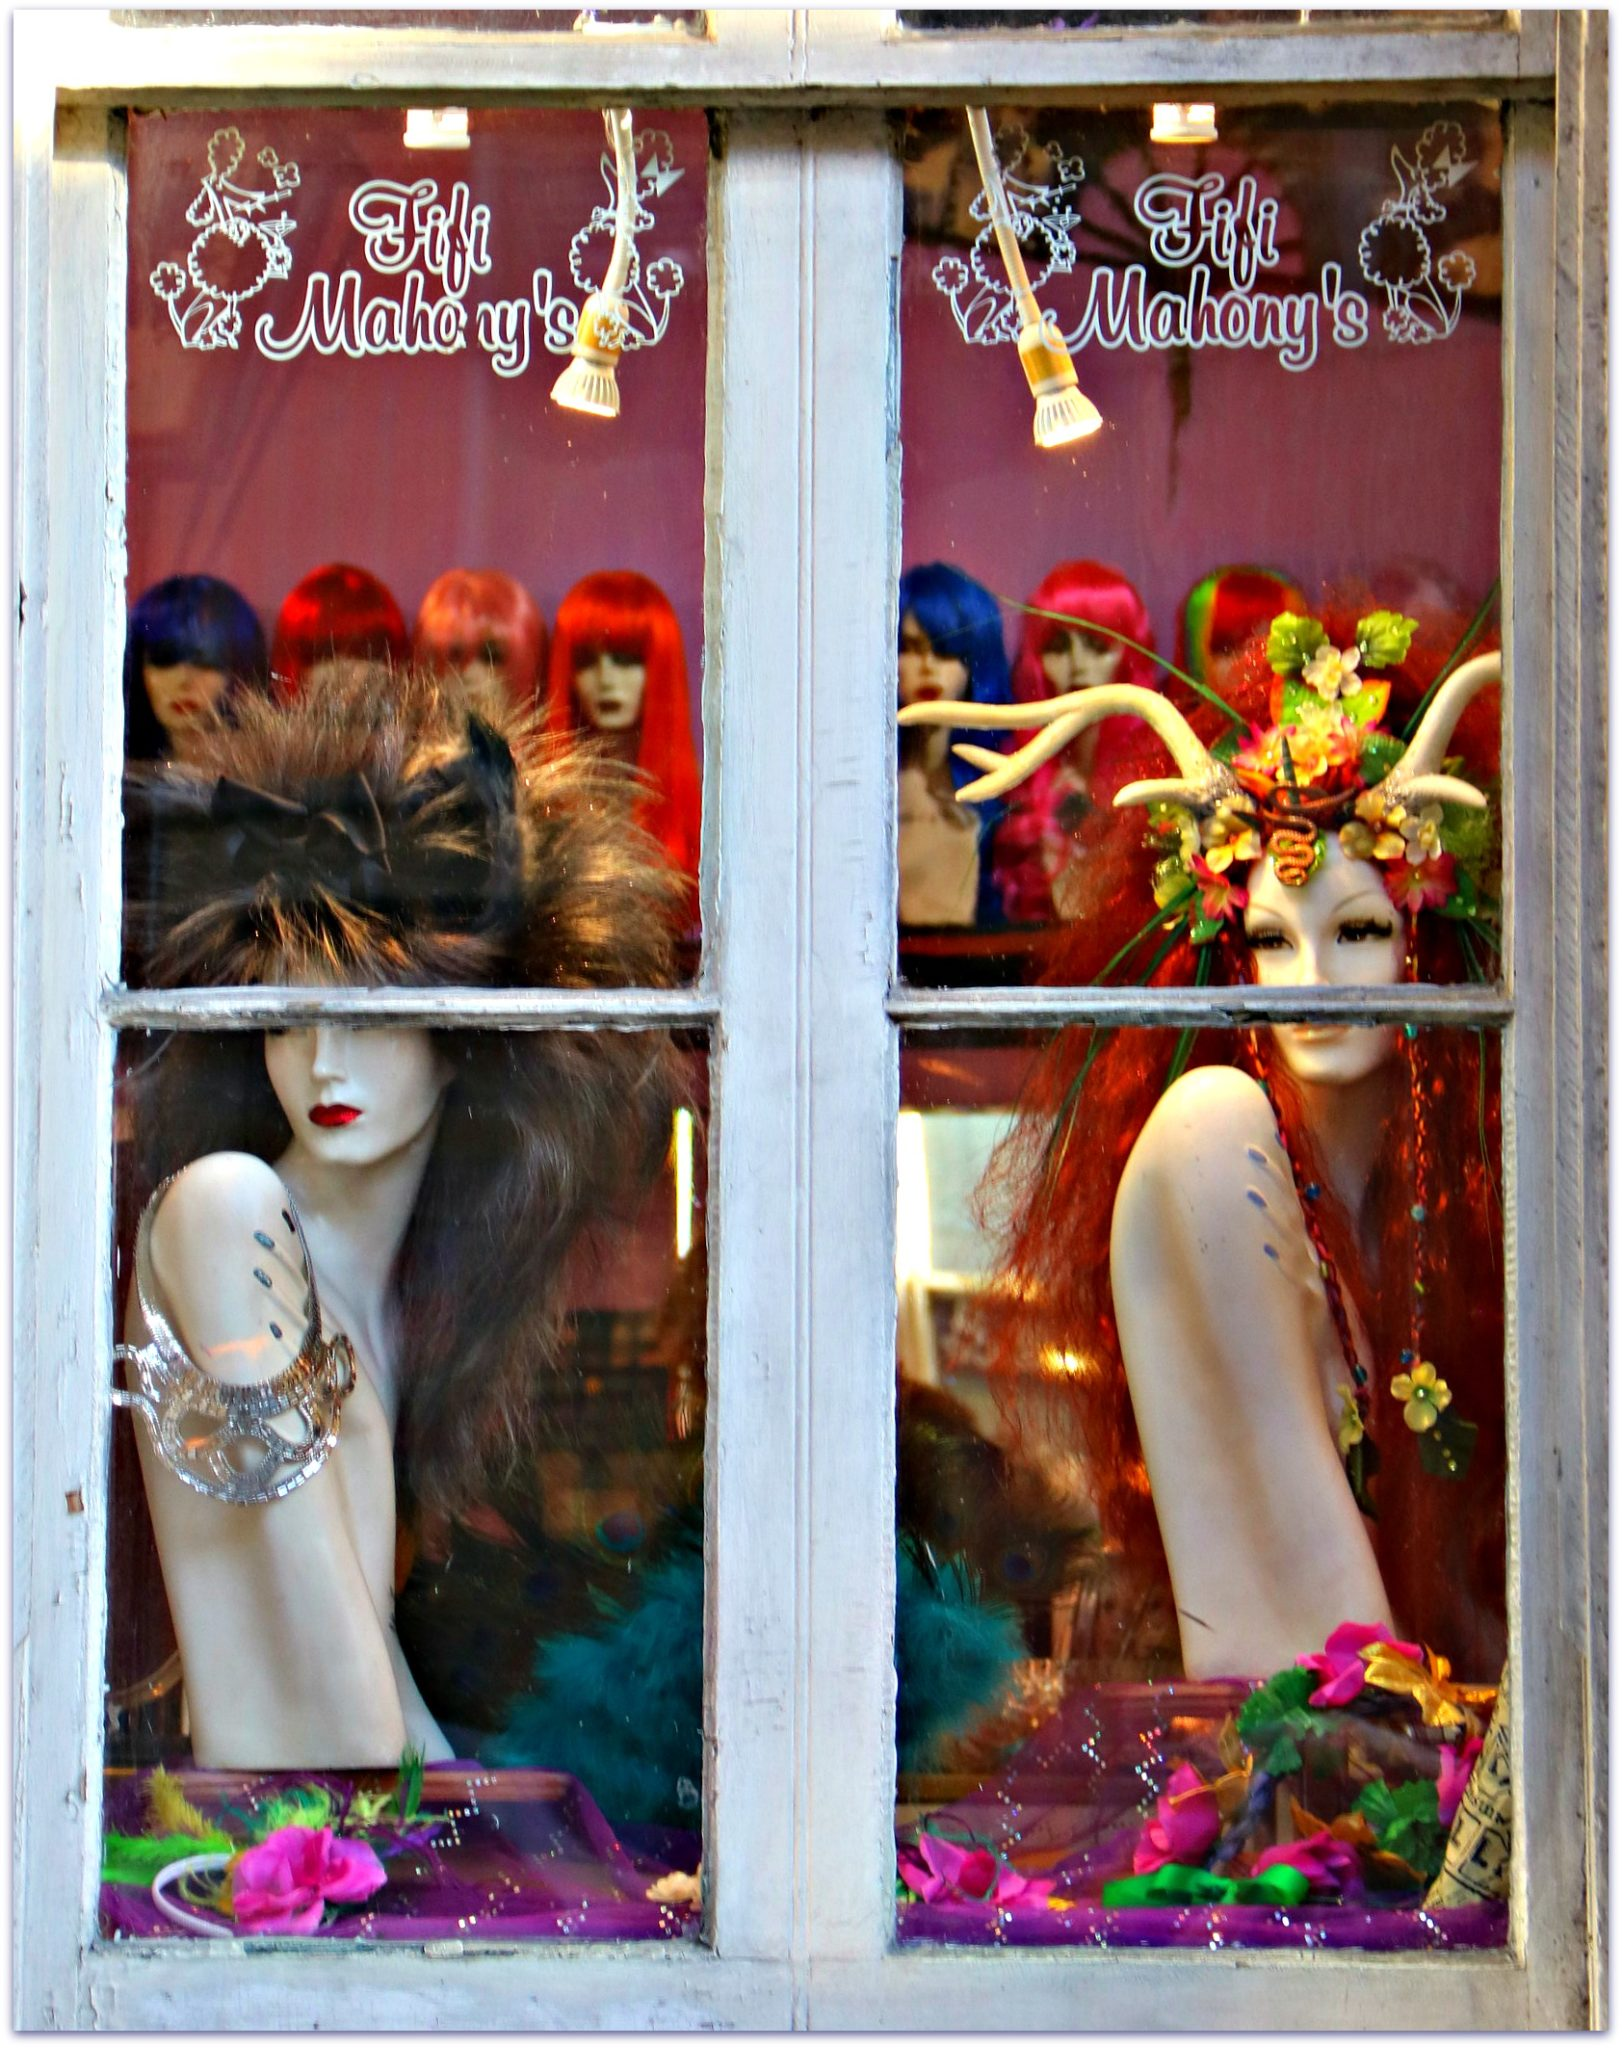 Window shopping on Royal Street in French Quarter